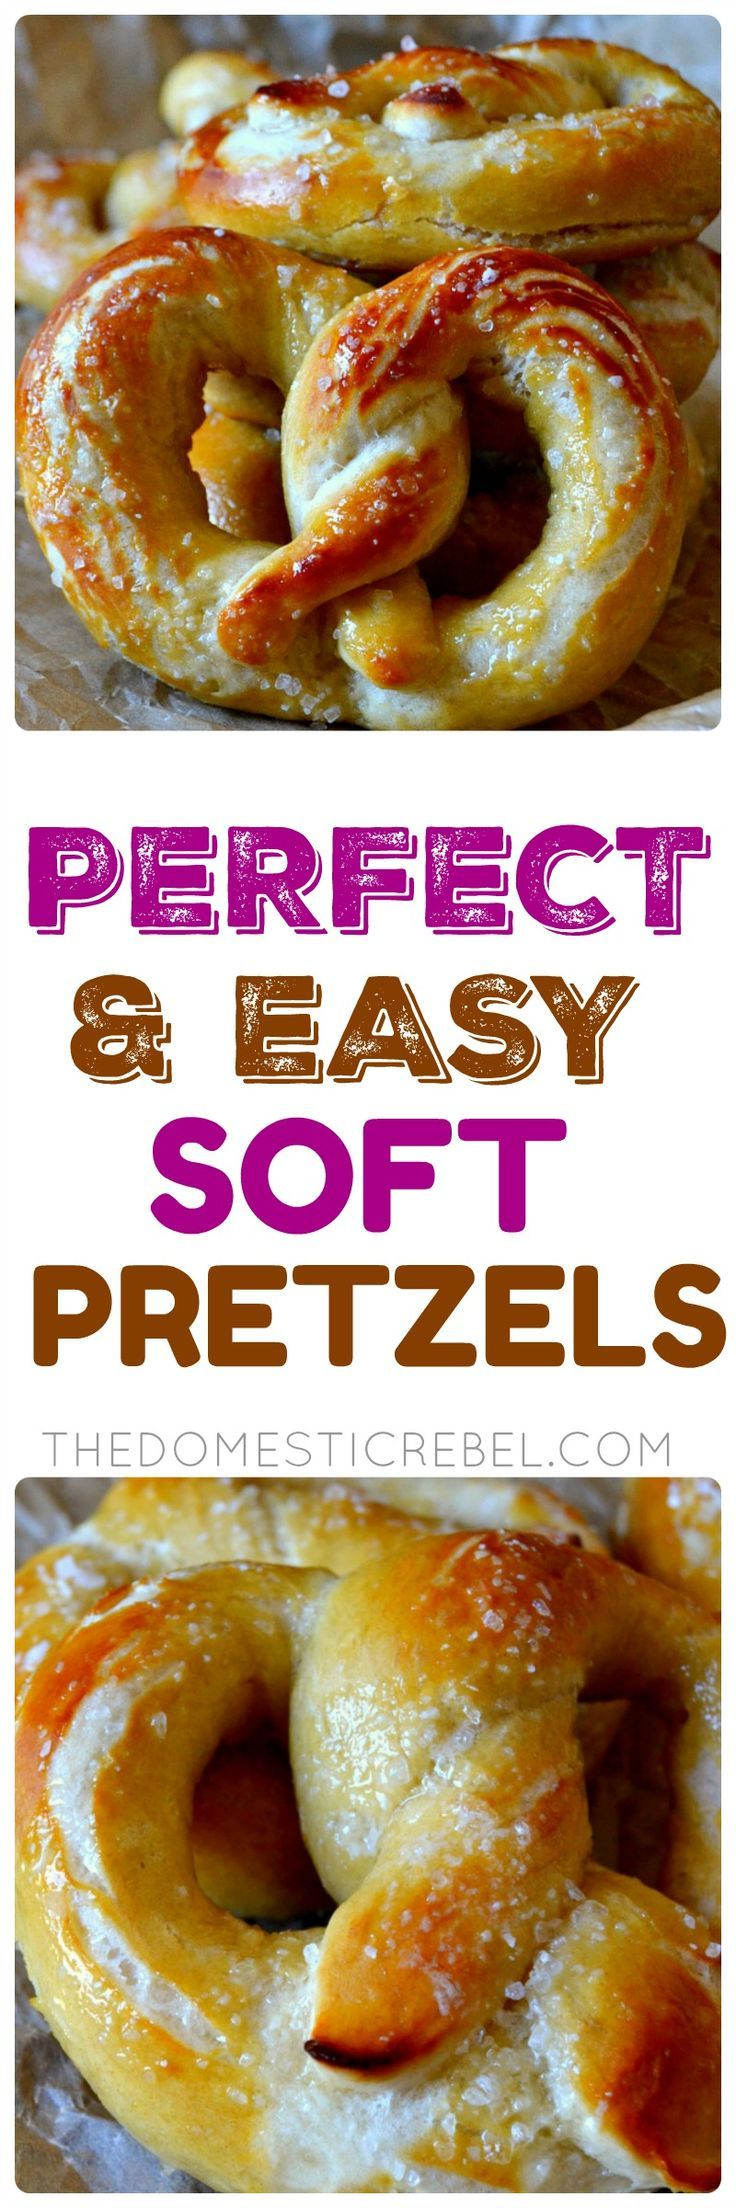 Perfect and Easy Soft Pretzels